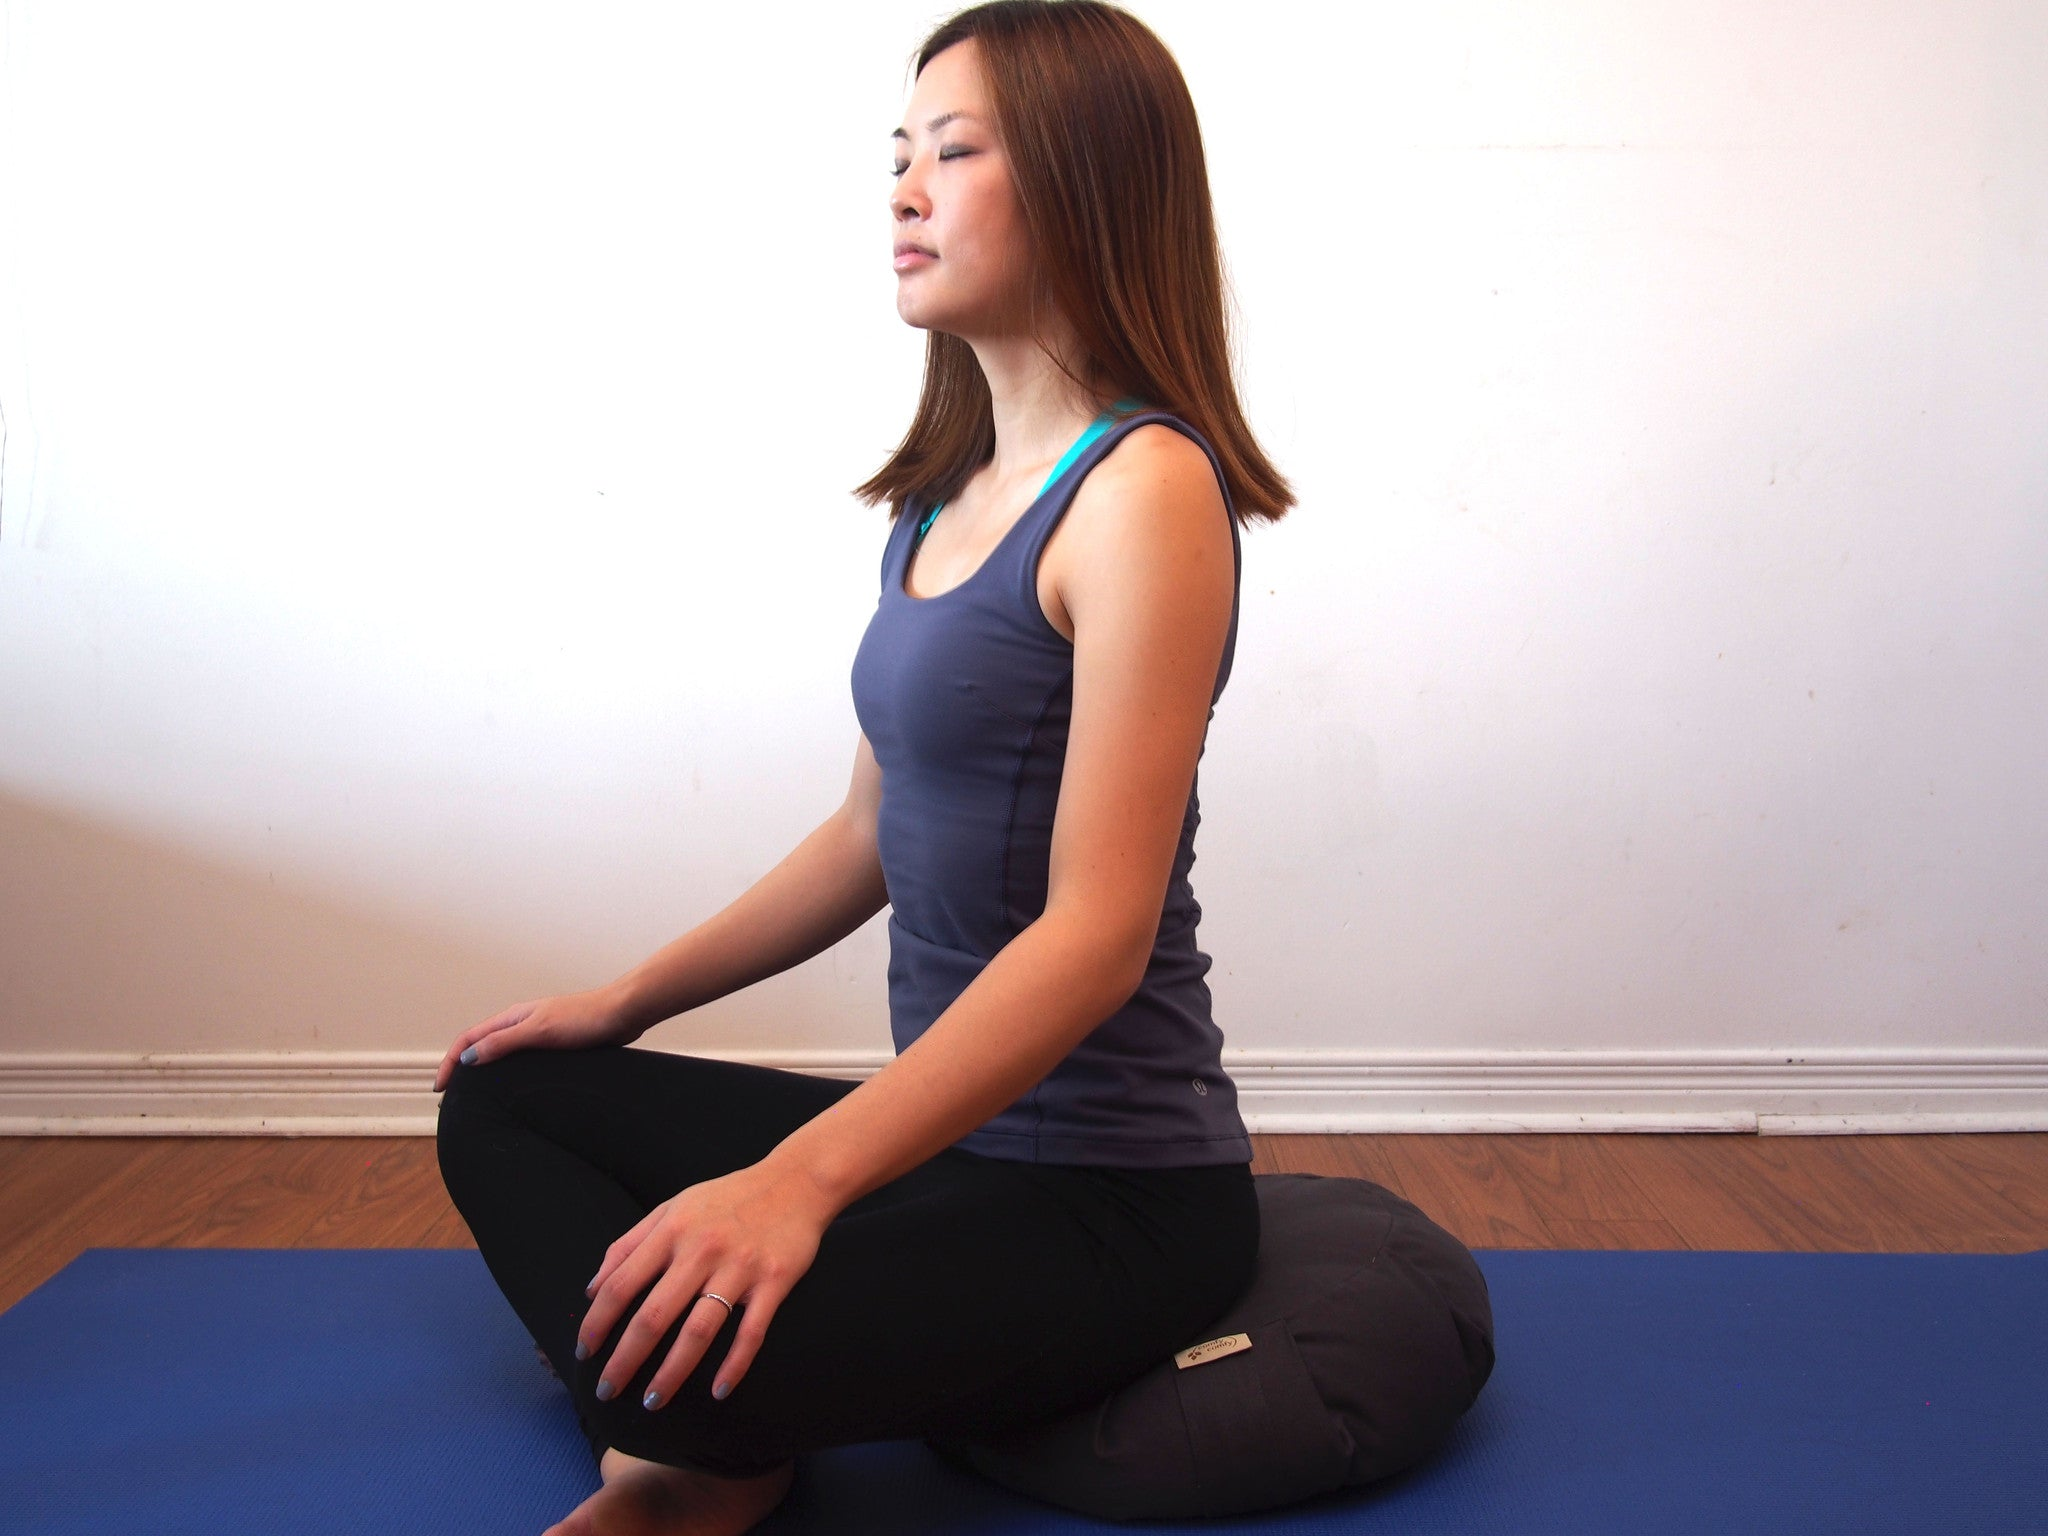 Meditating on Zafu Meditation Cushion